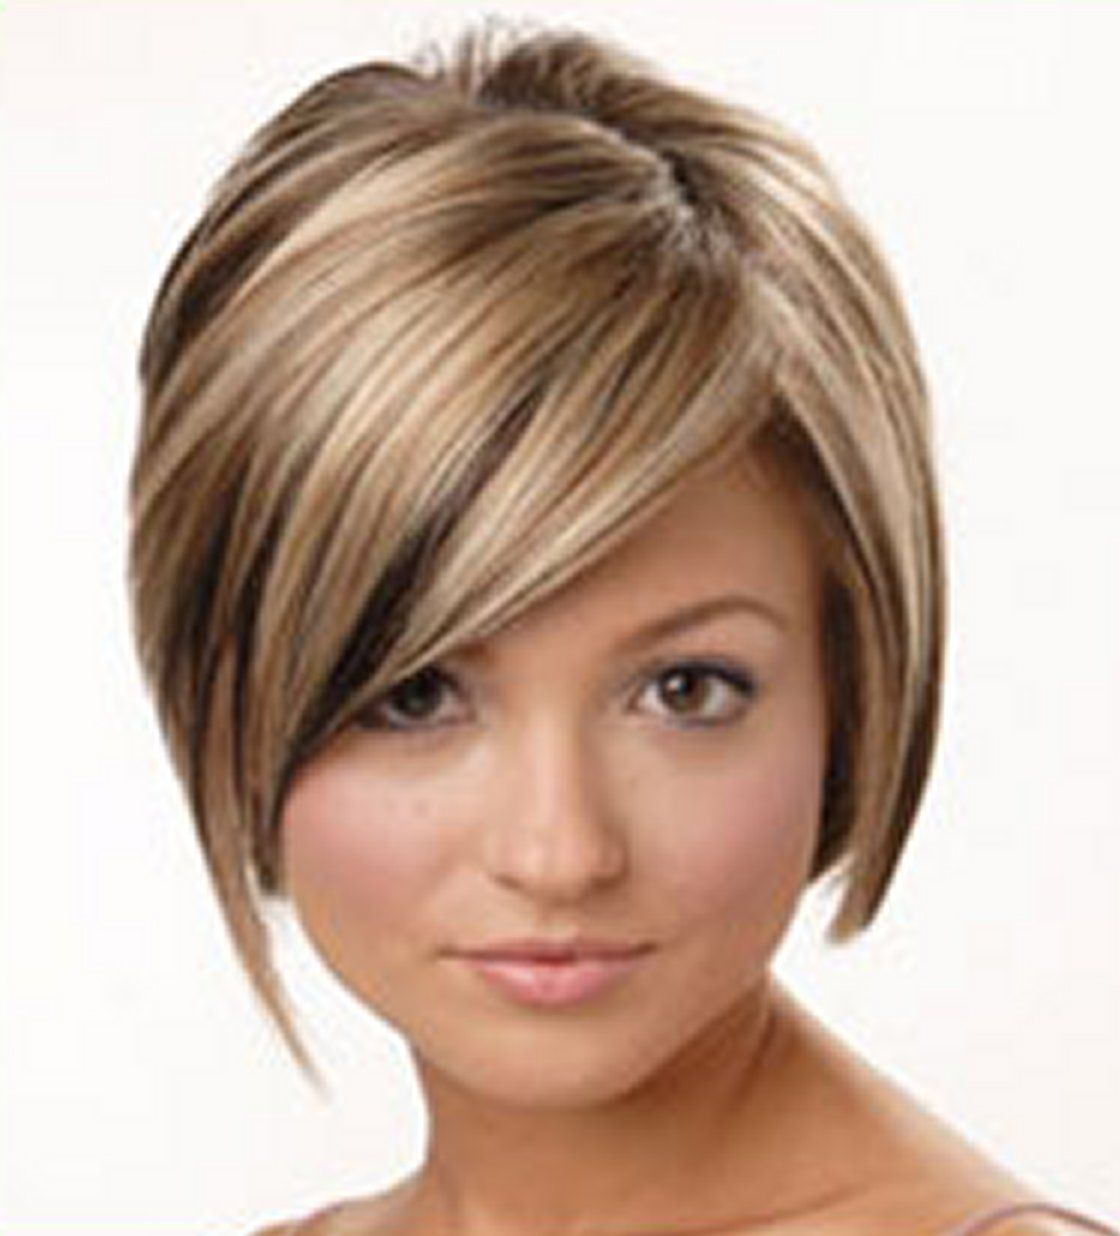 Marvelous 1000 Images About Hair Styles On Pinterest Bobs Medium Length Short Hairstyles Gunalazisus